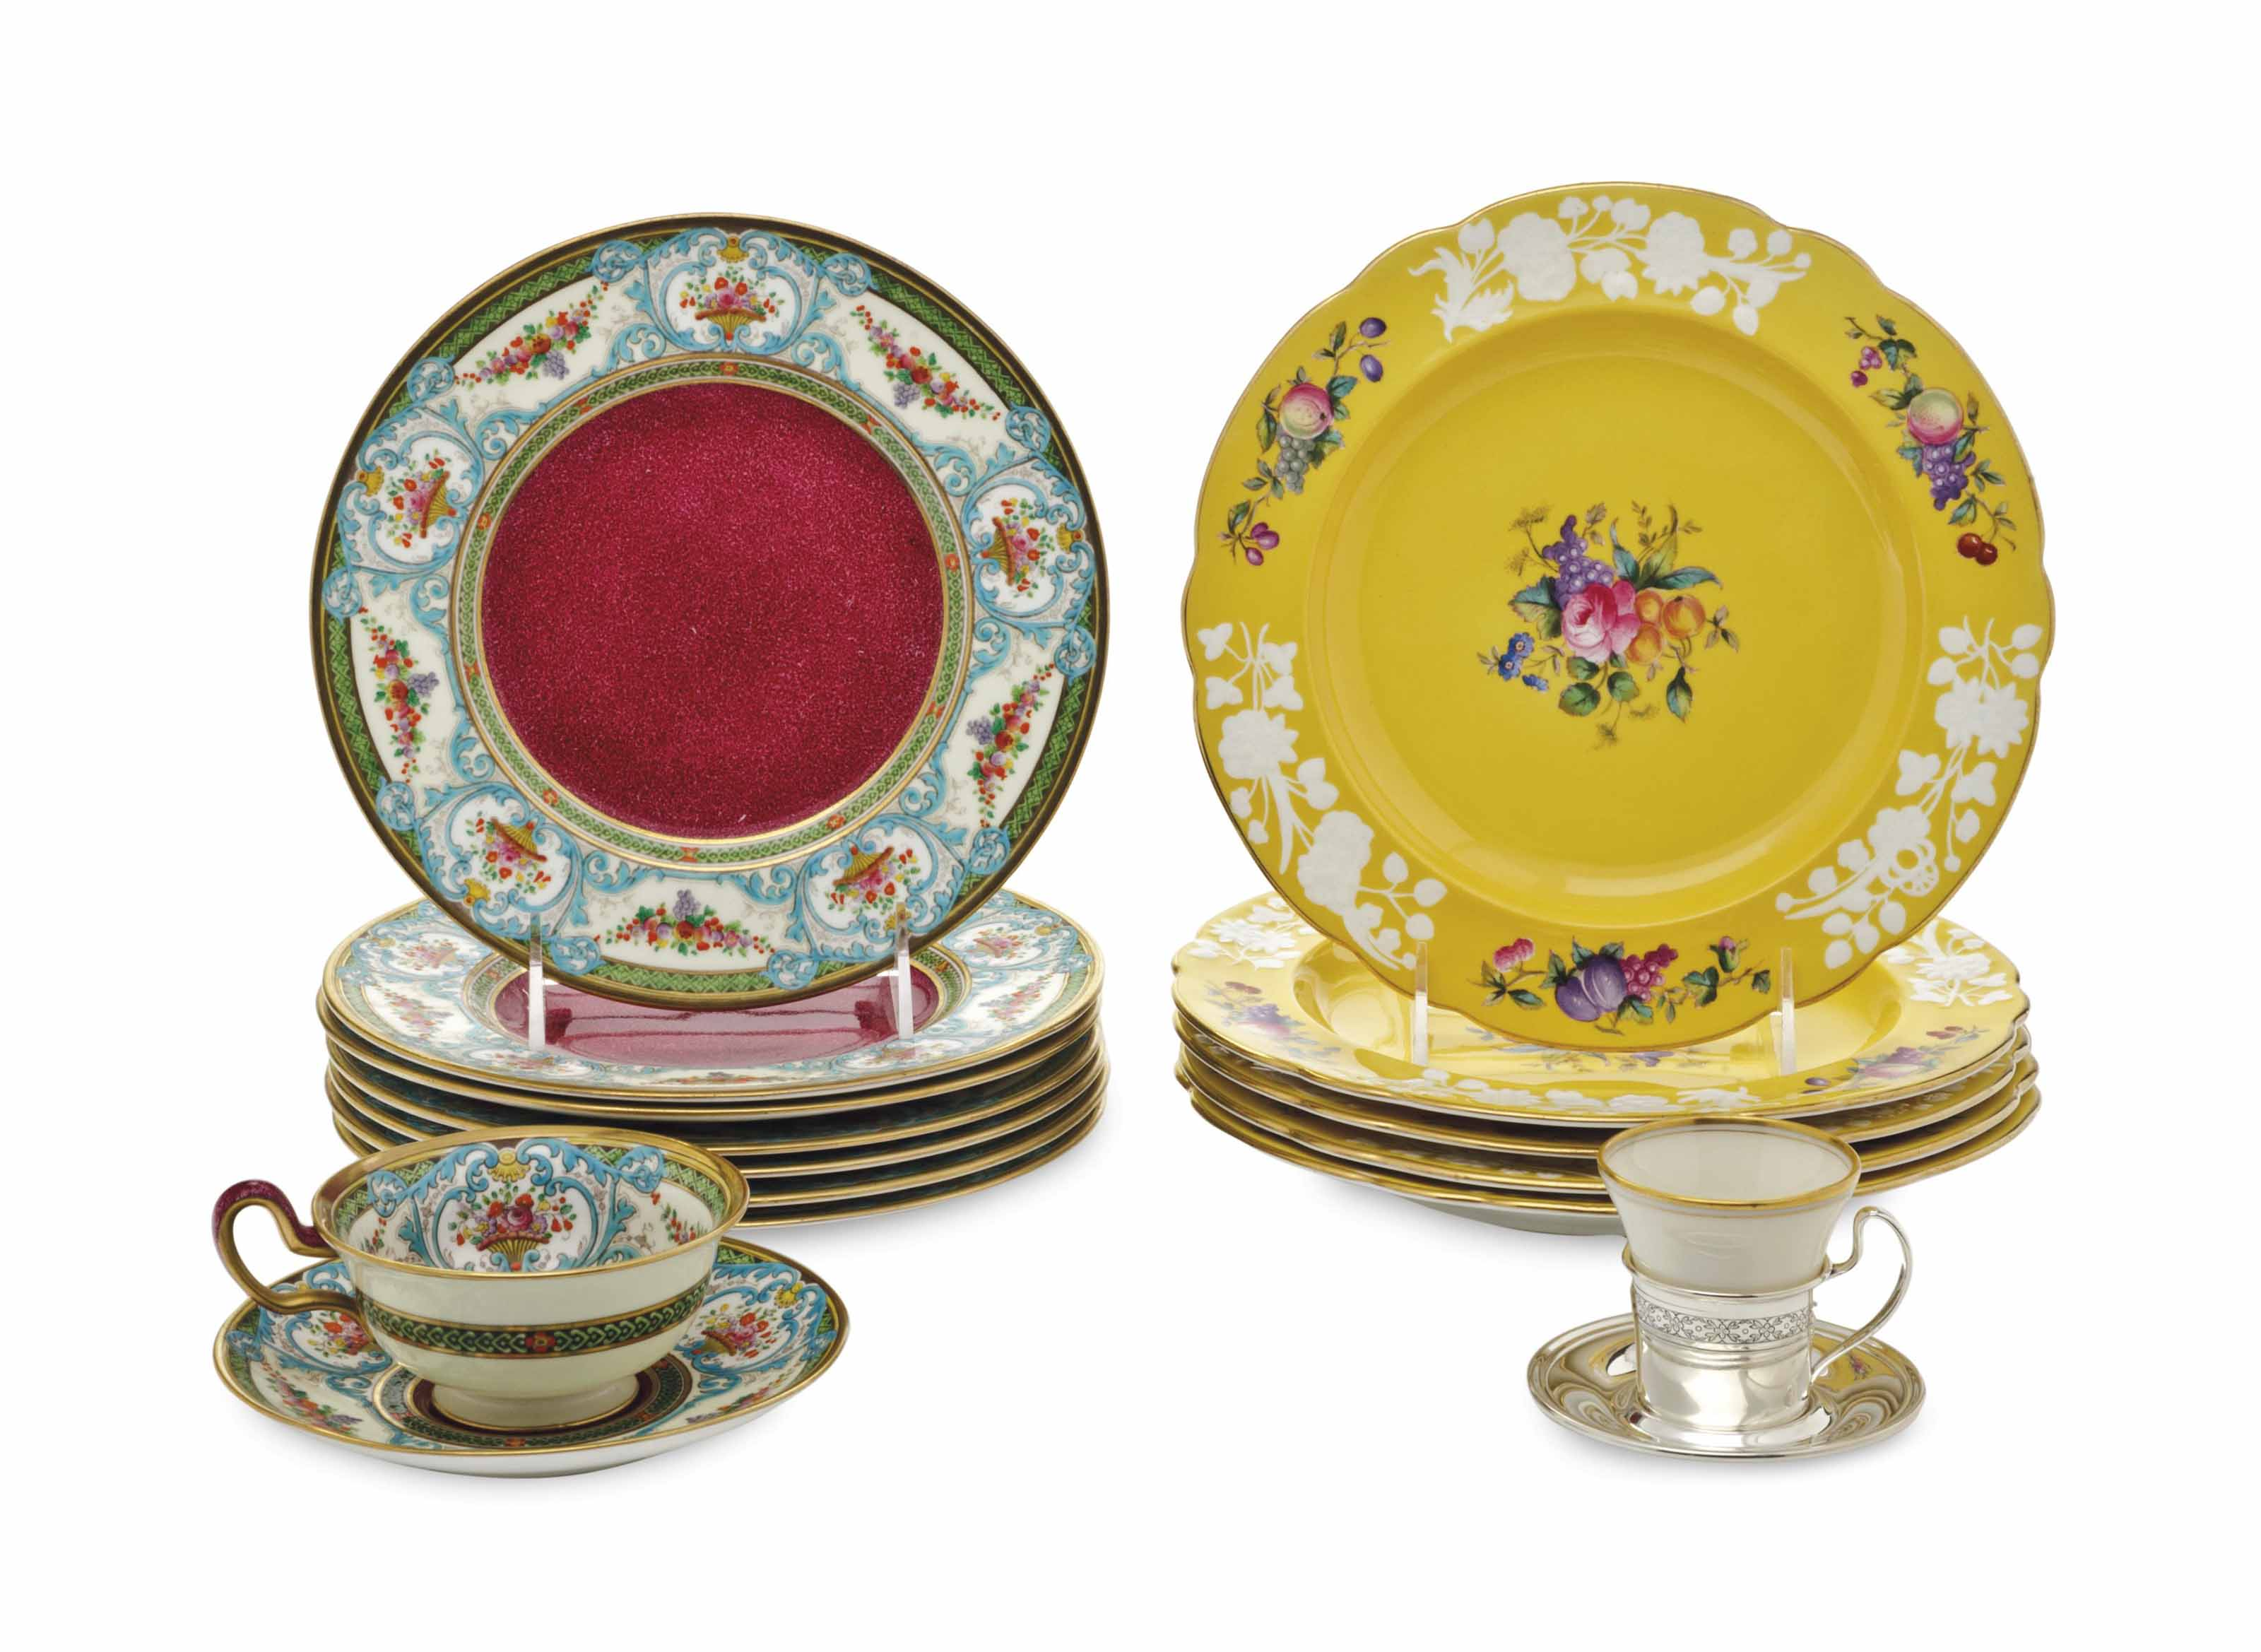 AN ASSEMBLED TWO PART ENGLISH PORCELAIN PART DESSERT SERVICE,